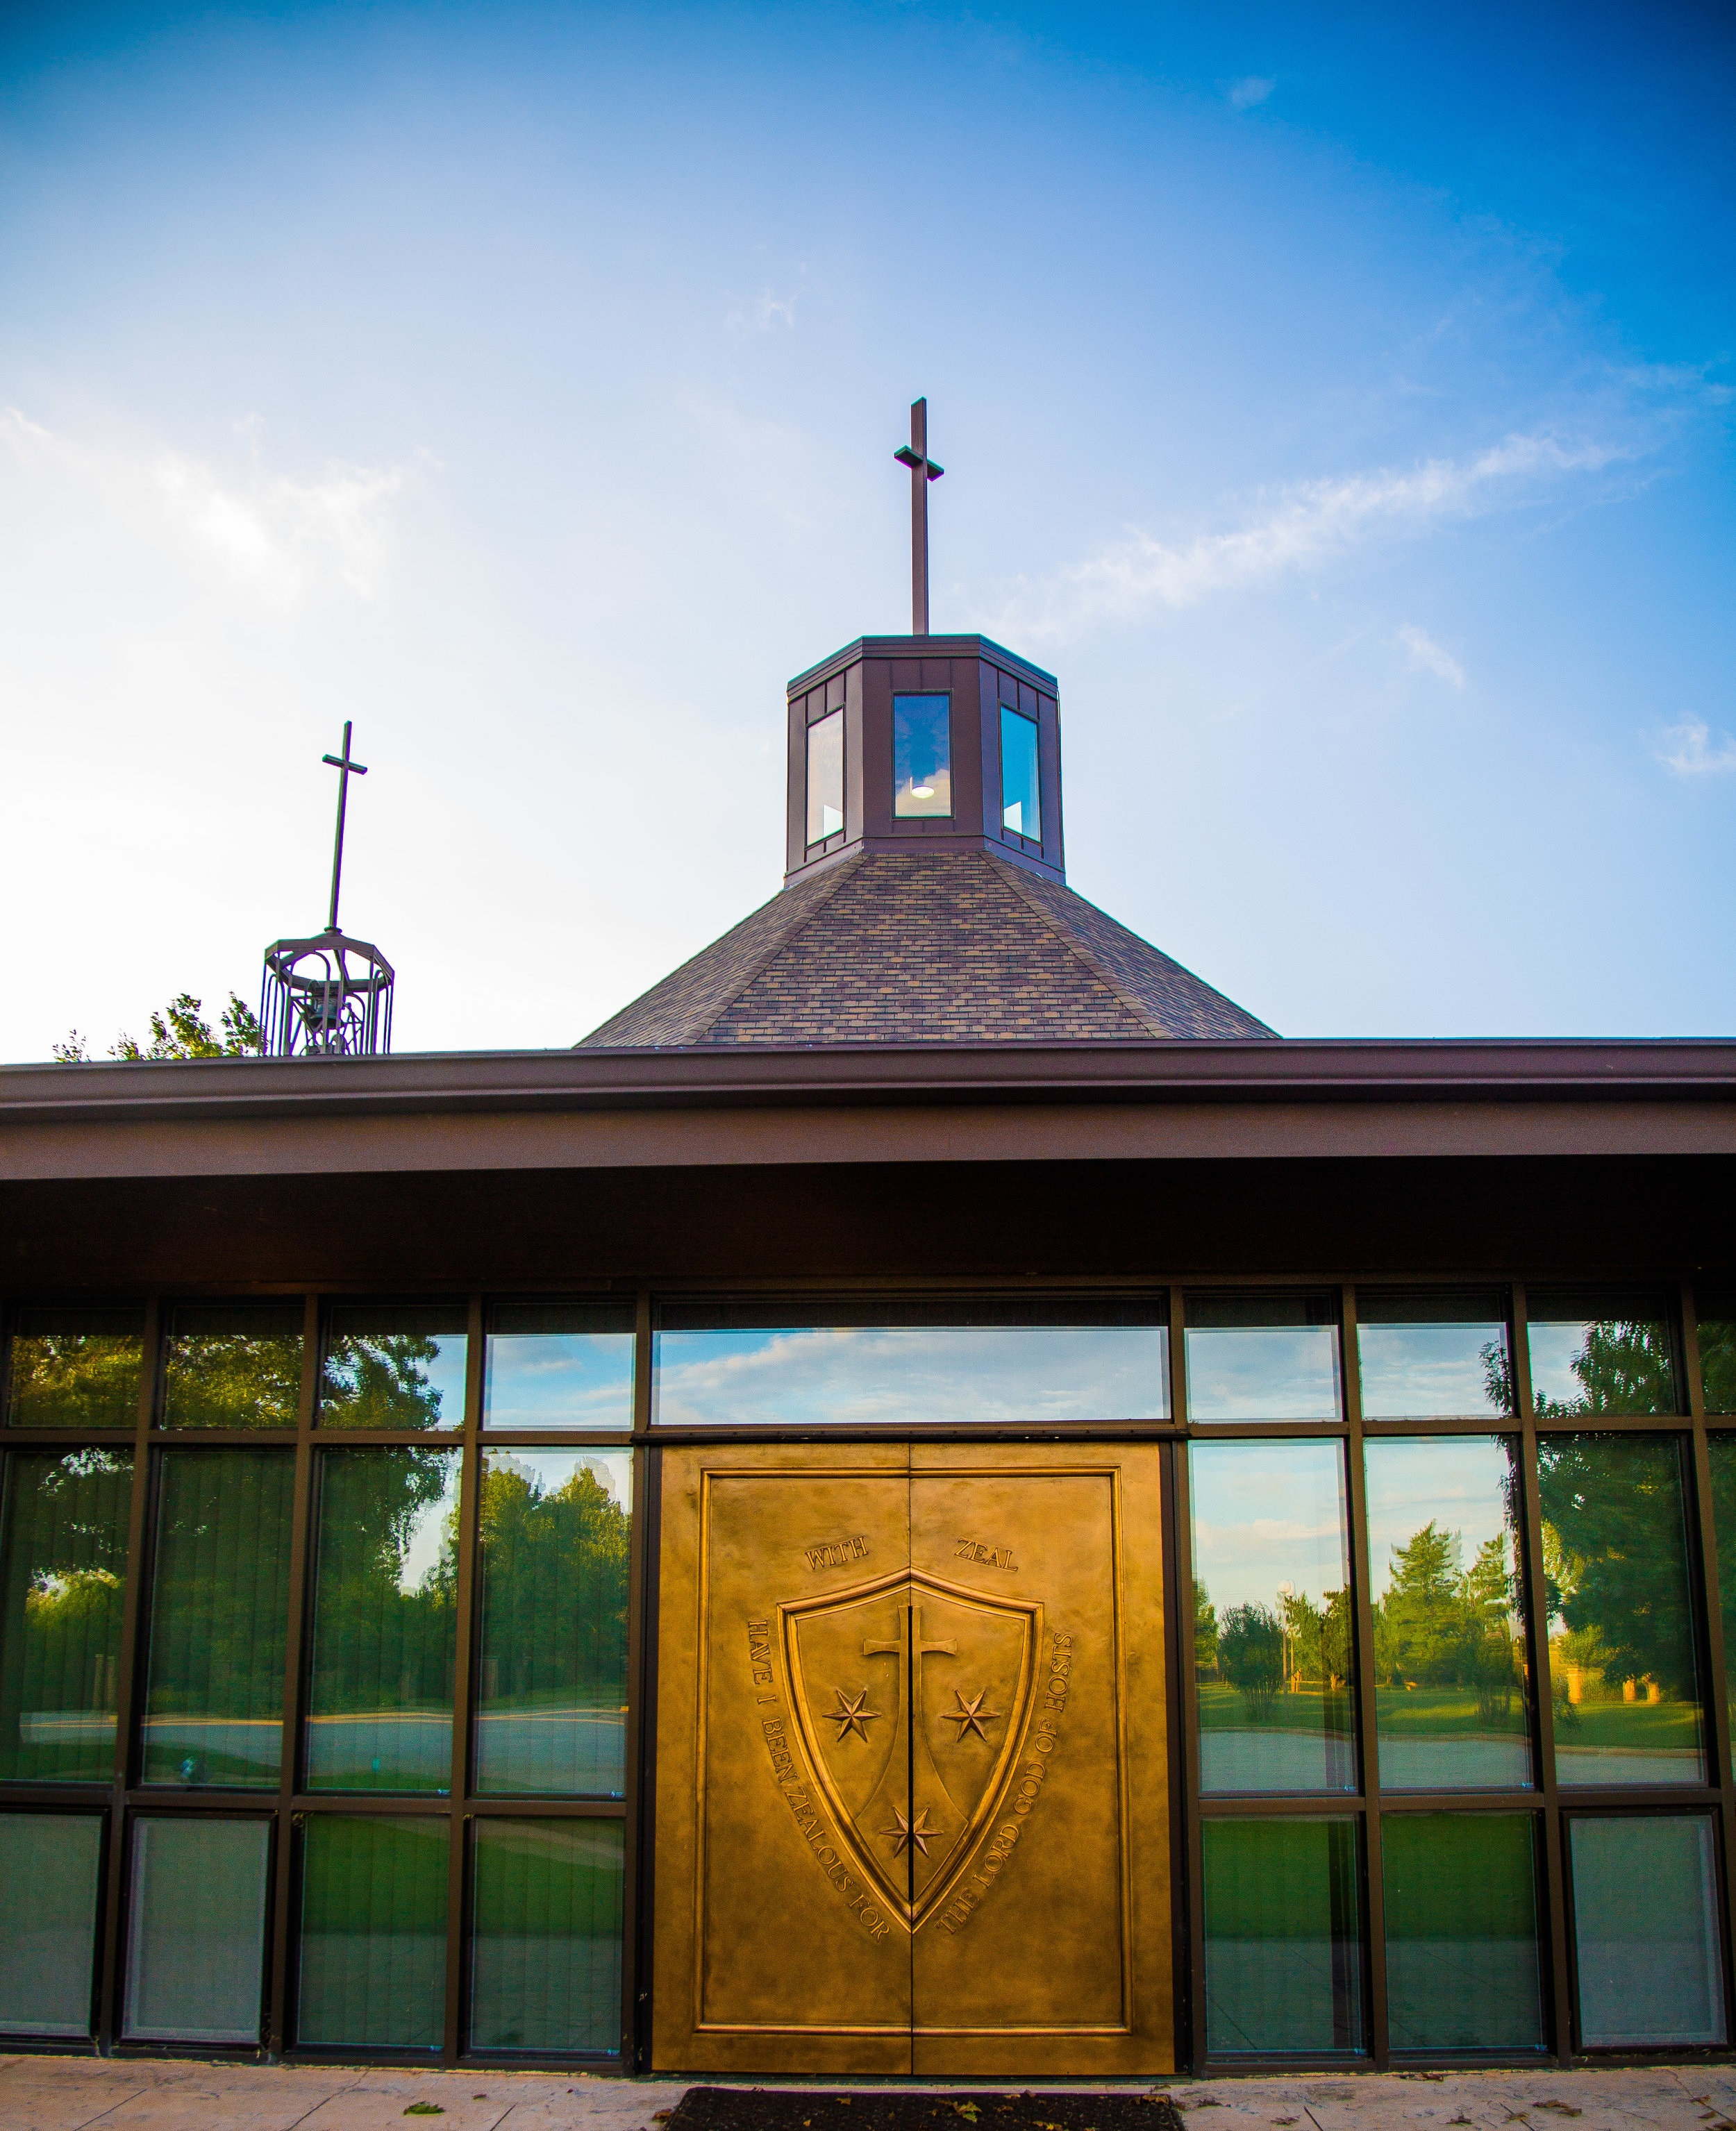 - We are in the process of raising $.5.5 million to purchase The Abbey. It is our mission to create a refuge for restoration. A place for individuals to experience the nearness of God. To find healing through prayer, worship, and teaching. For a personal tour please call 405.808.3220.